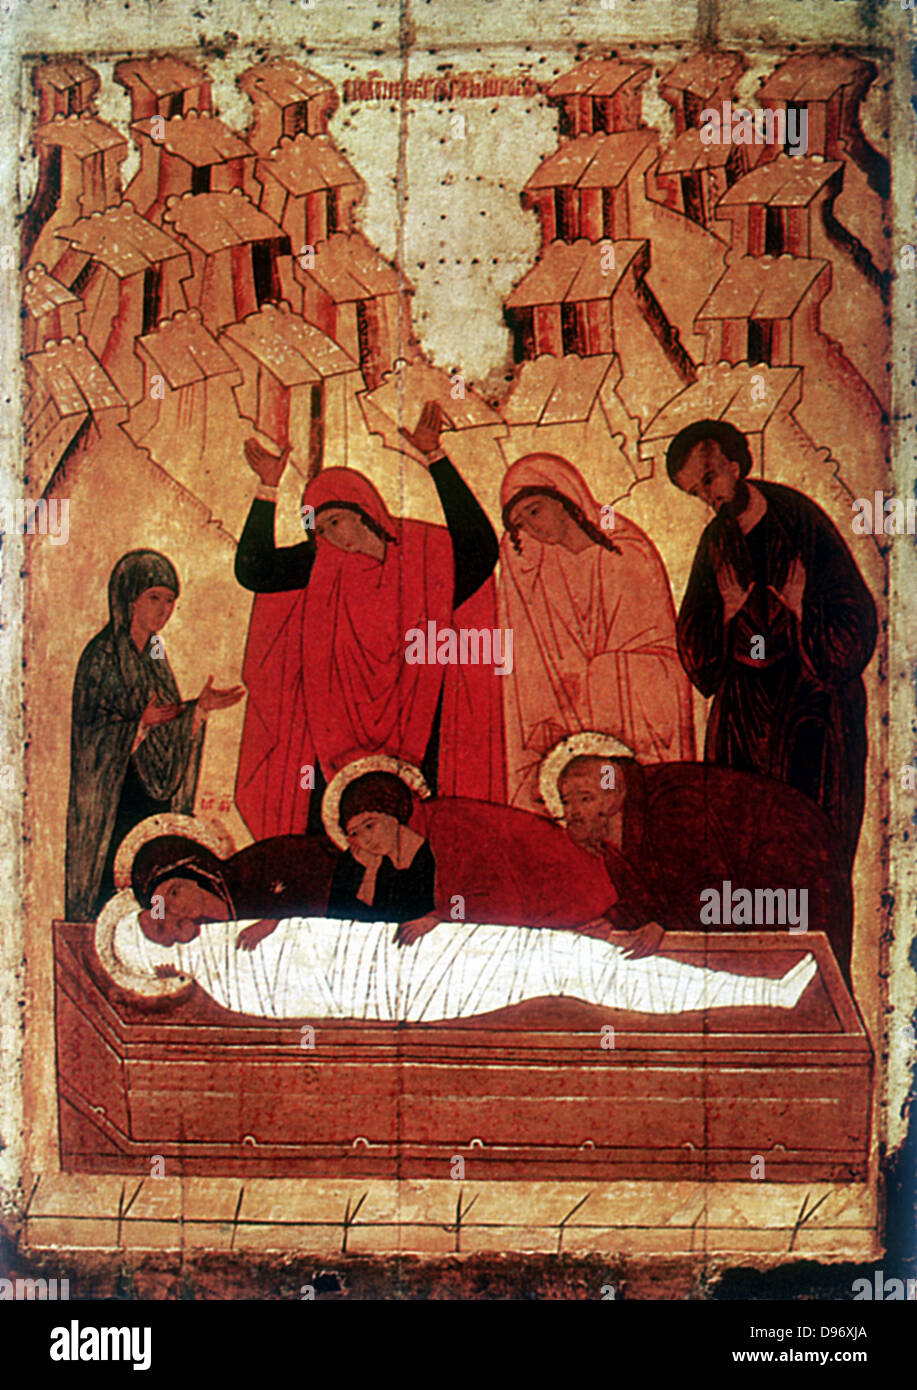 The Entombment: 15th century Russian icon. - Stock Image